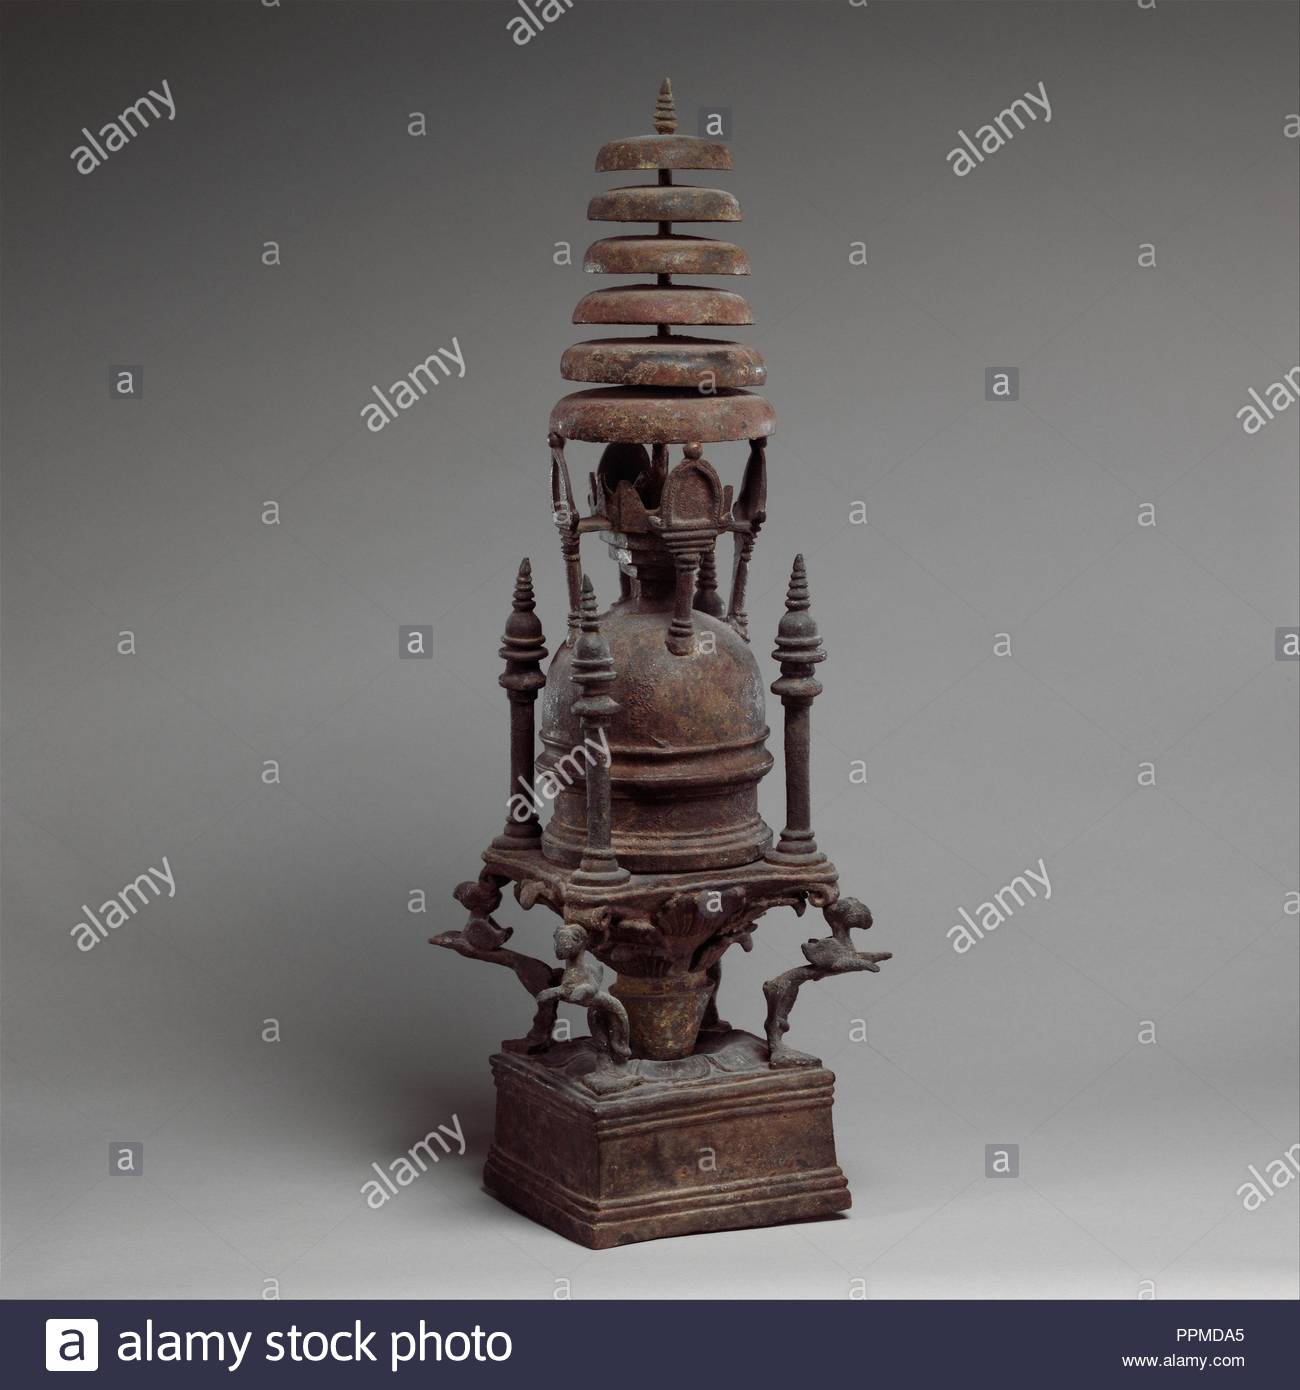 Reliquary in the Shape of a Stupa, ca. 4th–5th century, Pakistan (ancient region of Gandhara), Bronze, H. 22 3/4 in. (57.8 cm); W. 7 1/2 in. (19.1 cm), Sculpture, The stupa sits atop a Corinthian capital bracketed by four felines with wings and beaks. Its elaborate form suggests it was placed in a shrine where it was seen rather than enclosed in a solid masonry stupa. - Stock Image